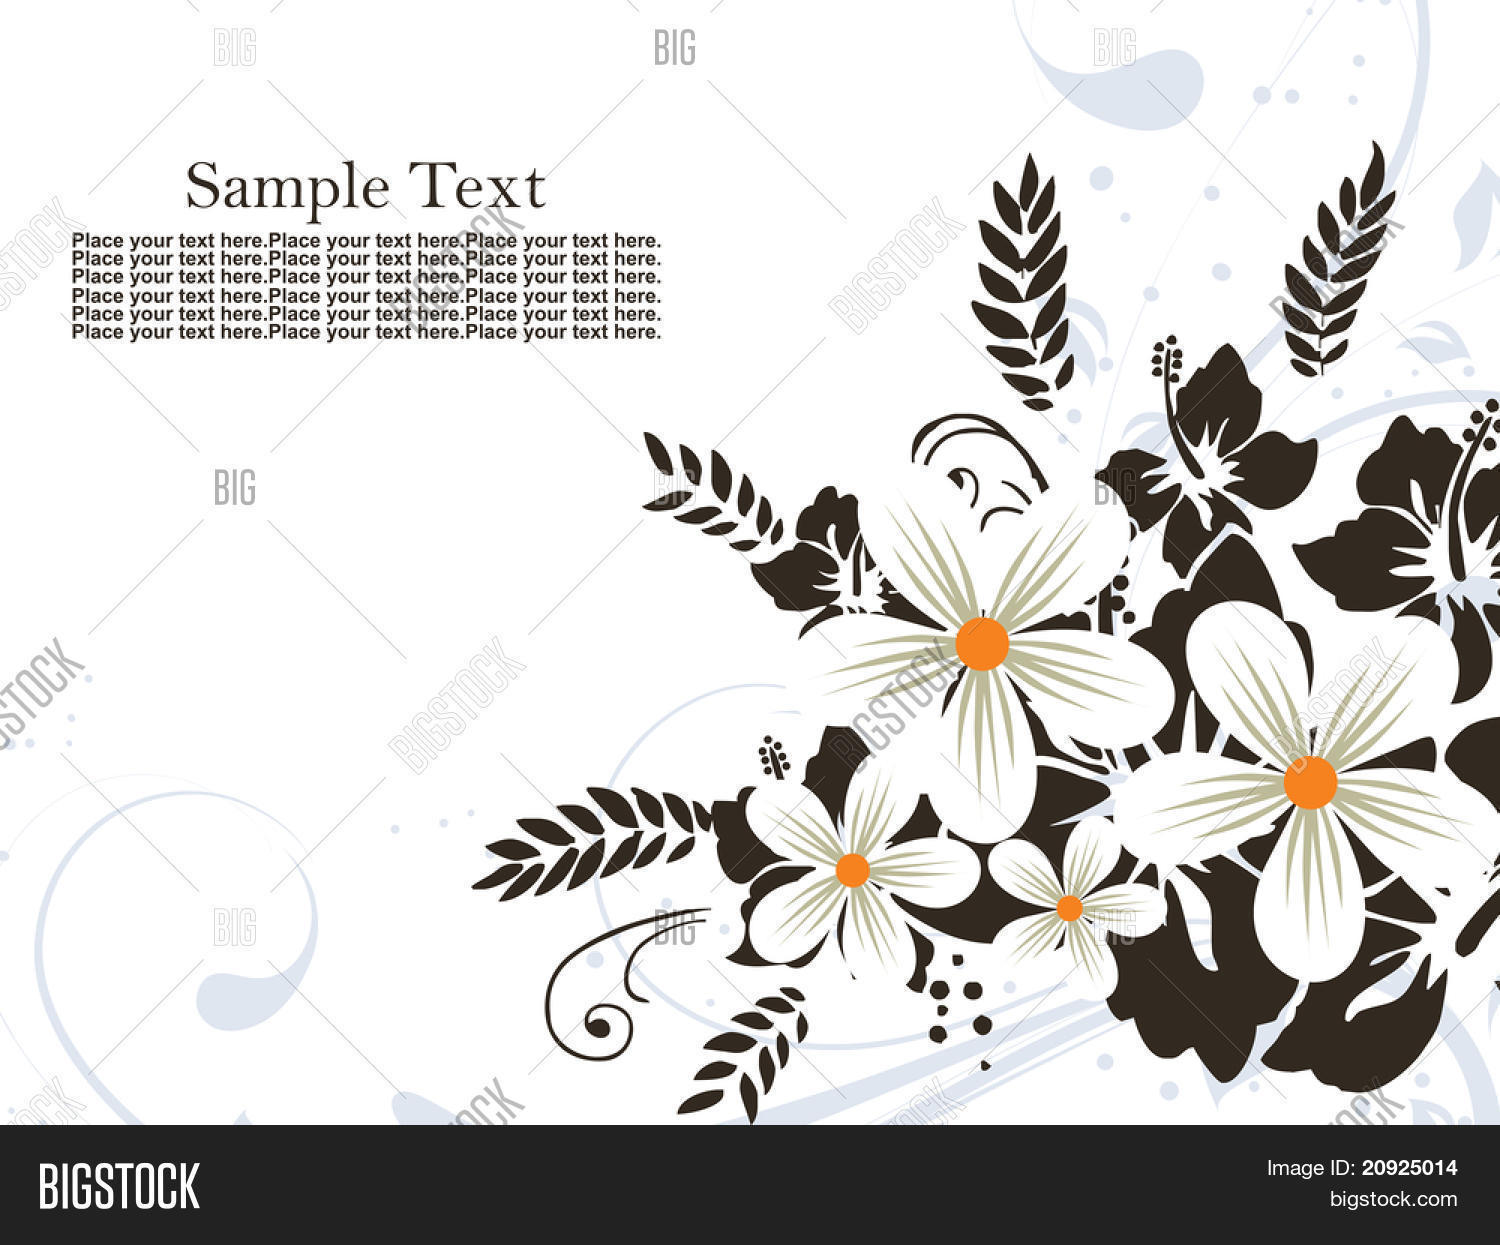 Black white flower vector photo free trial bigstock black and white flower pattern background with sample text mightylinksfo